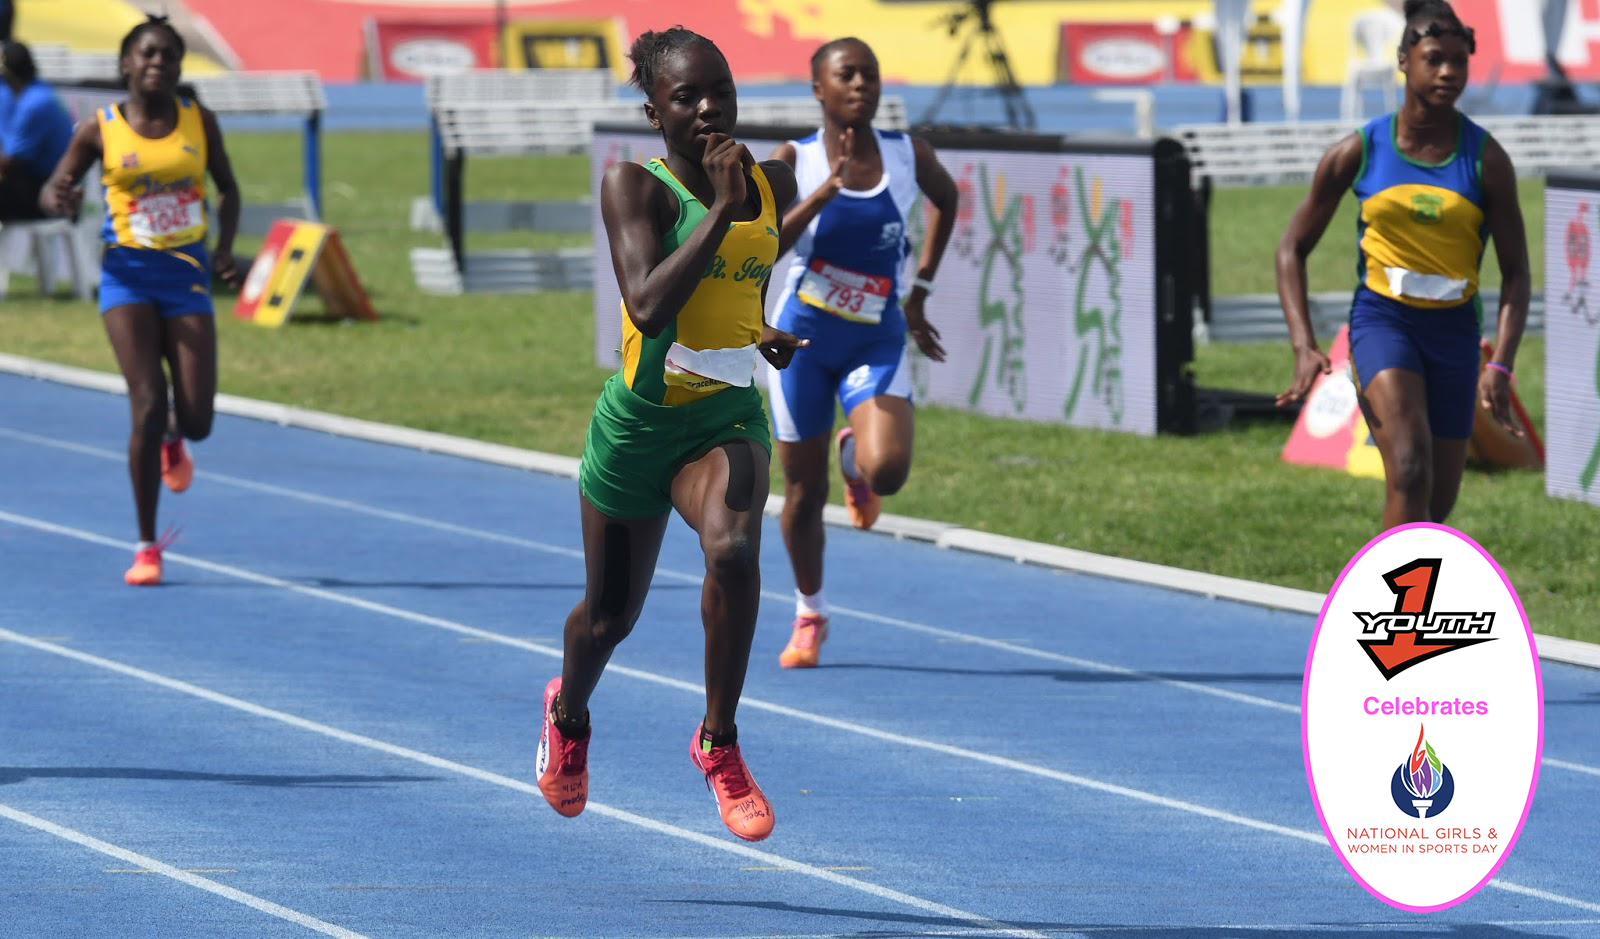 Meet Jamaica's new sprinting phenom, 14 year old Brianna Lyston